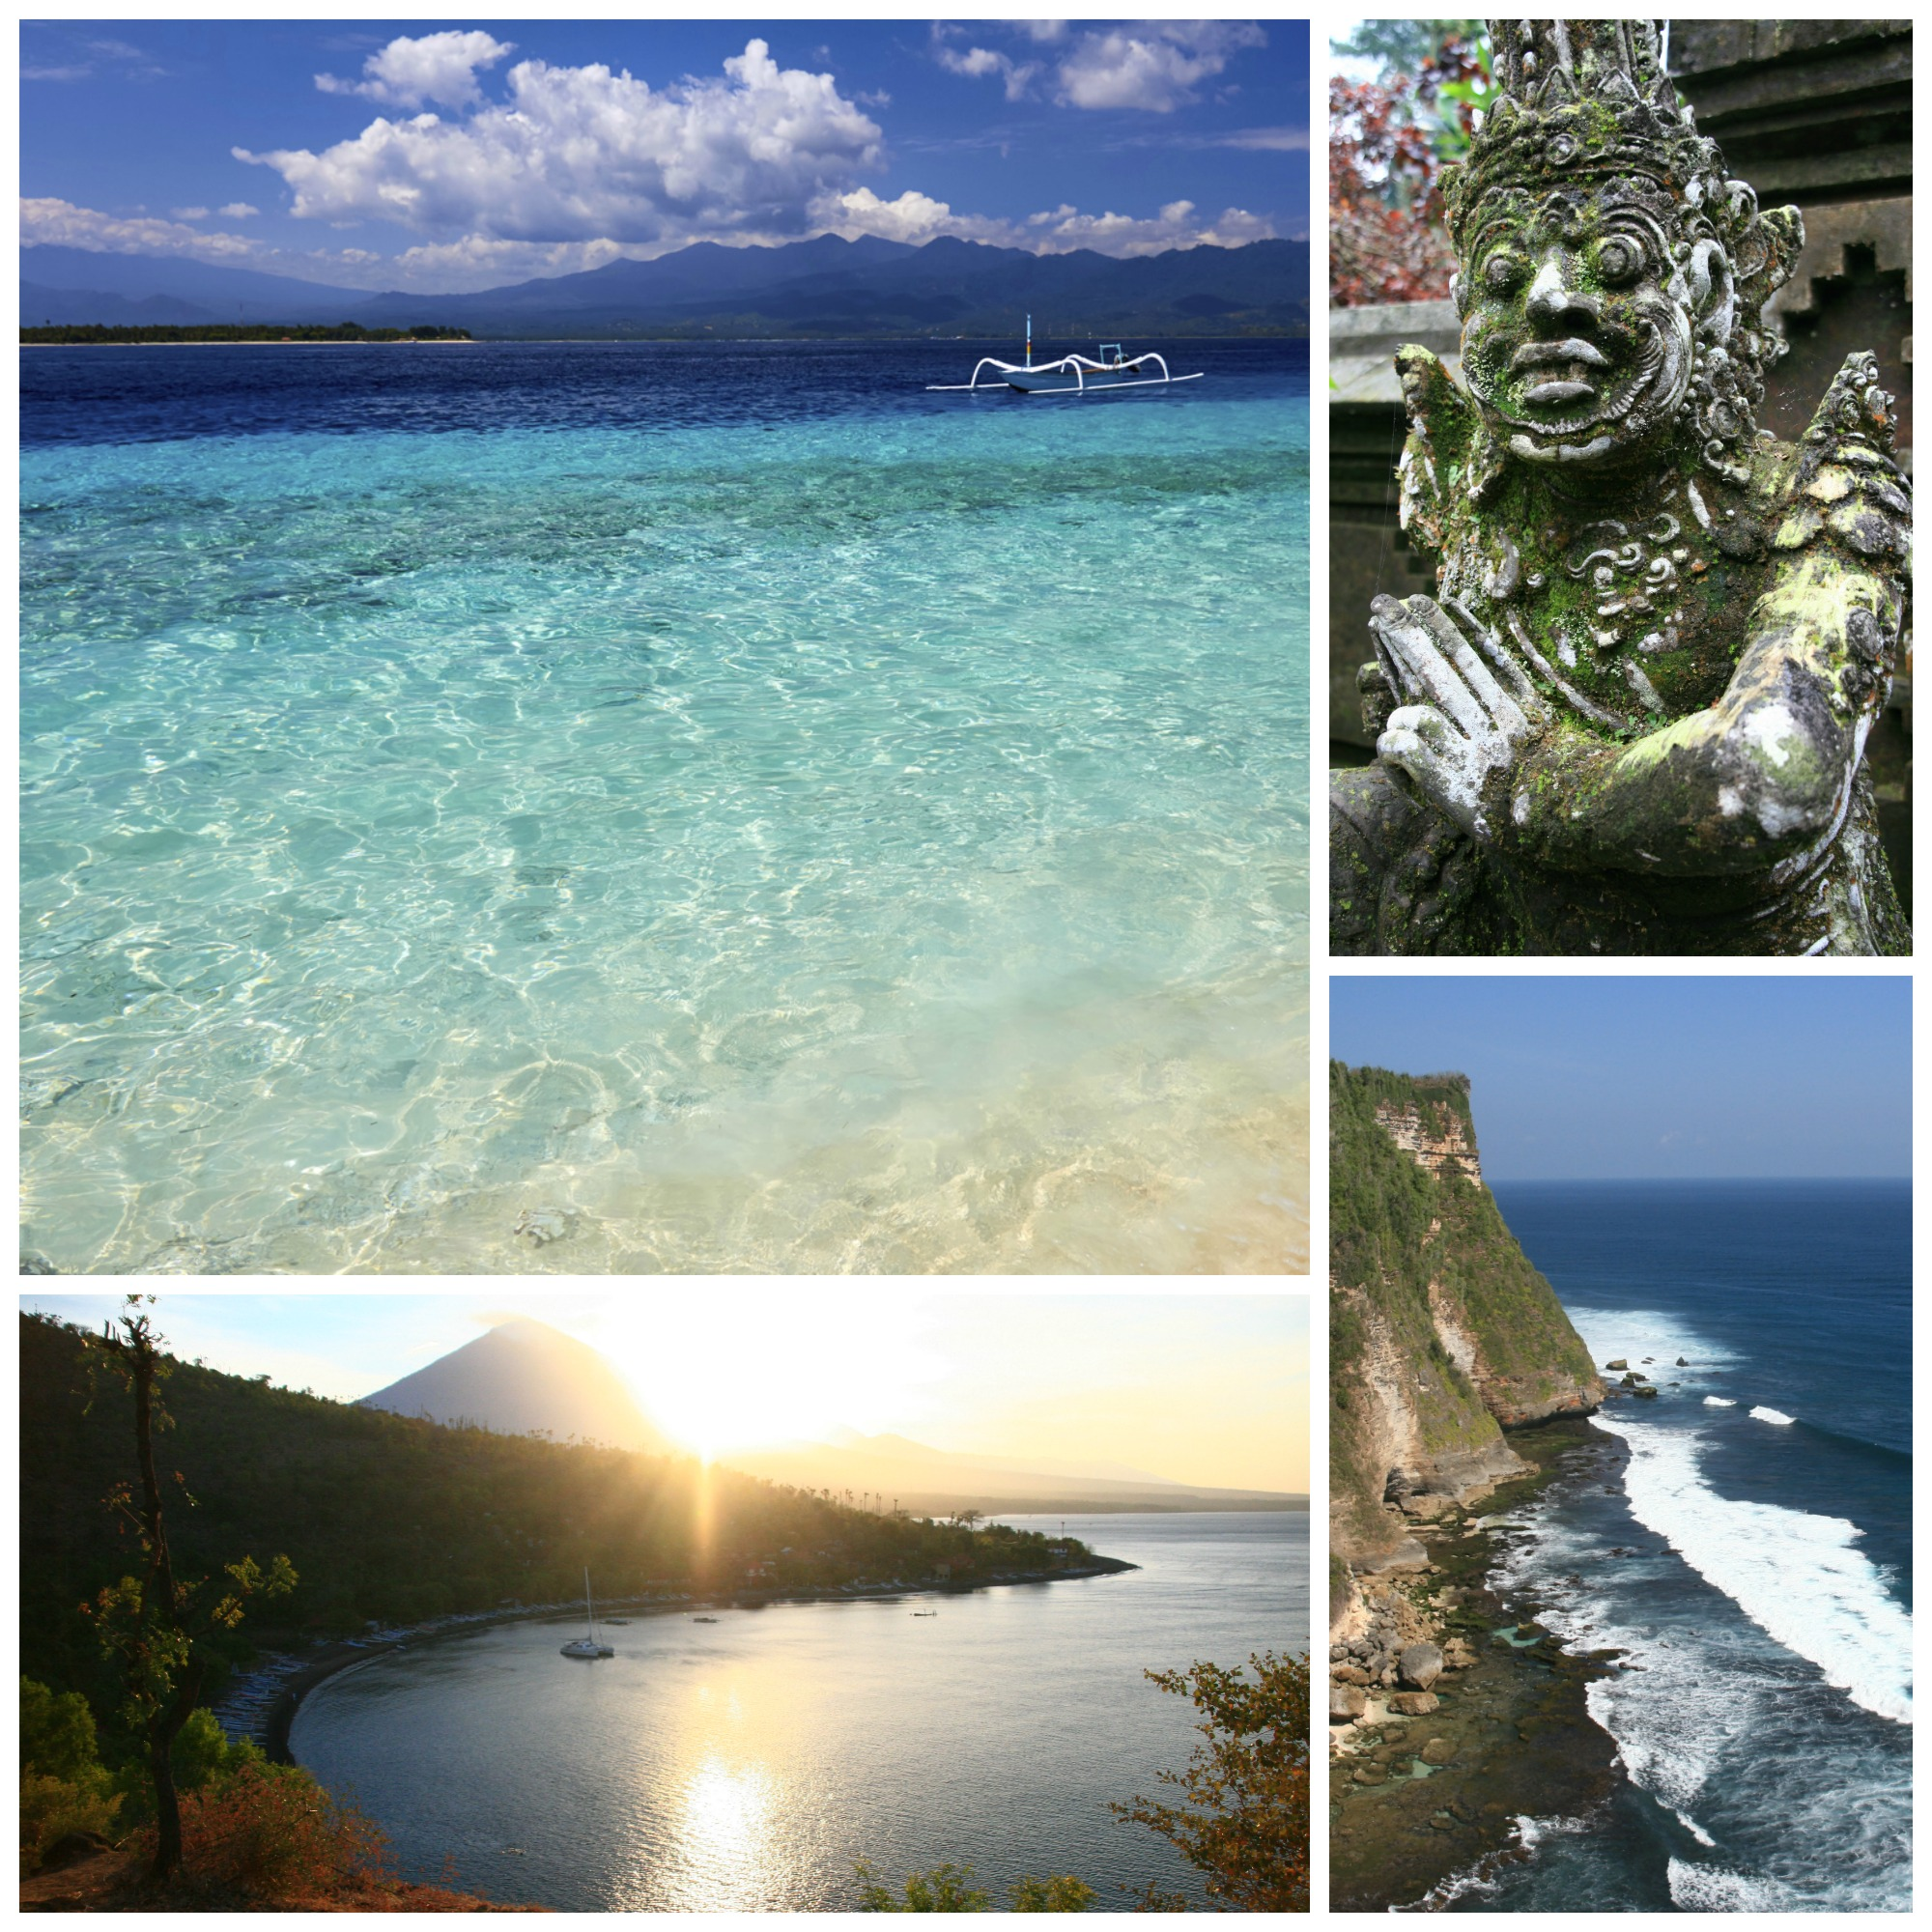 Your Diving, Yoga retreat Bali  The perfect destination for many heart-centered moments!